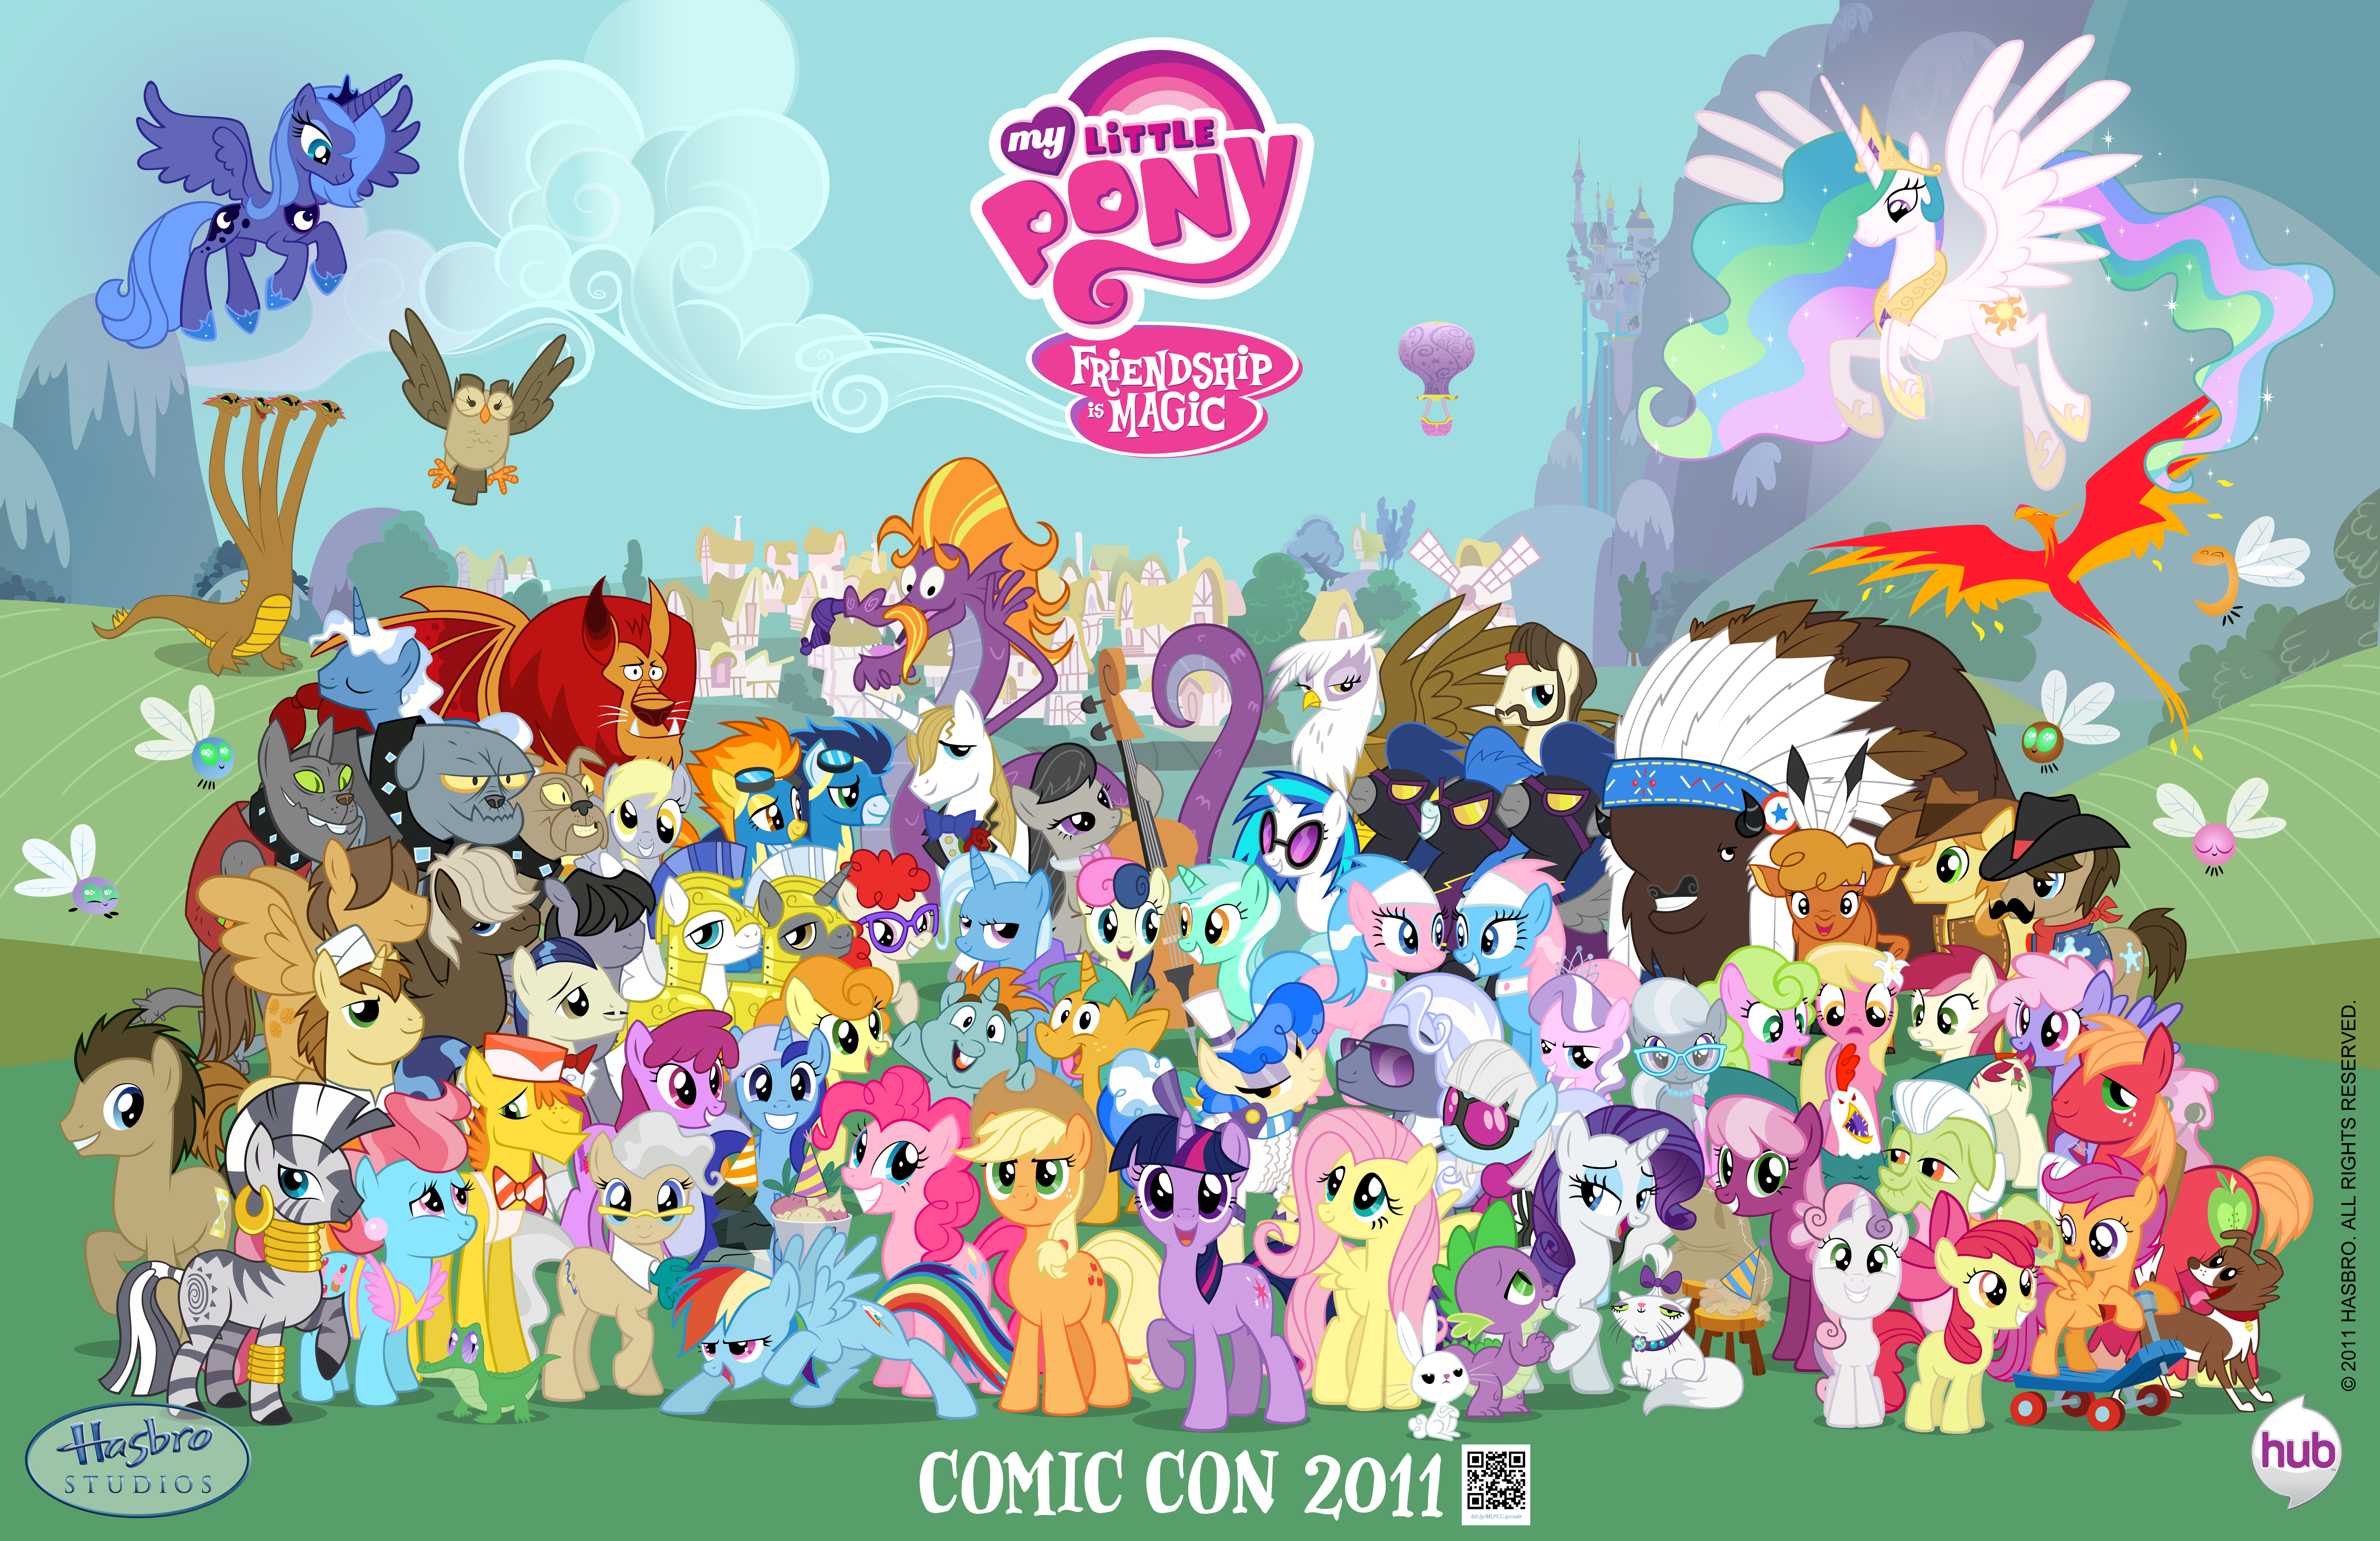 My little pony friendship is magic coloring pages best night ever -  Where I Watch My Little Pony Friendship Is Magic We Re The Kids In Equestria Archive Page 4 Rpgnet Forums